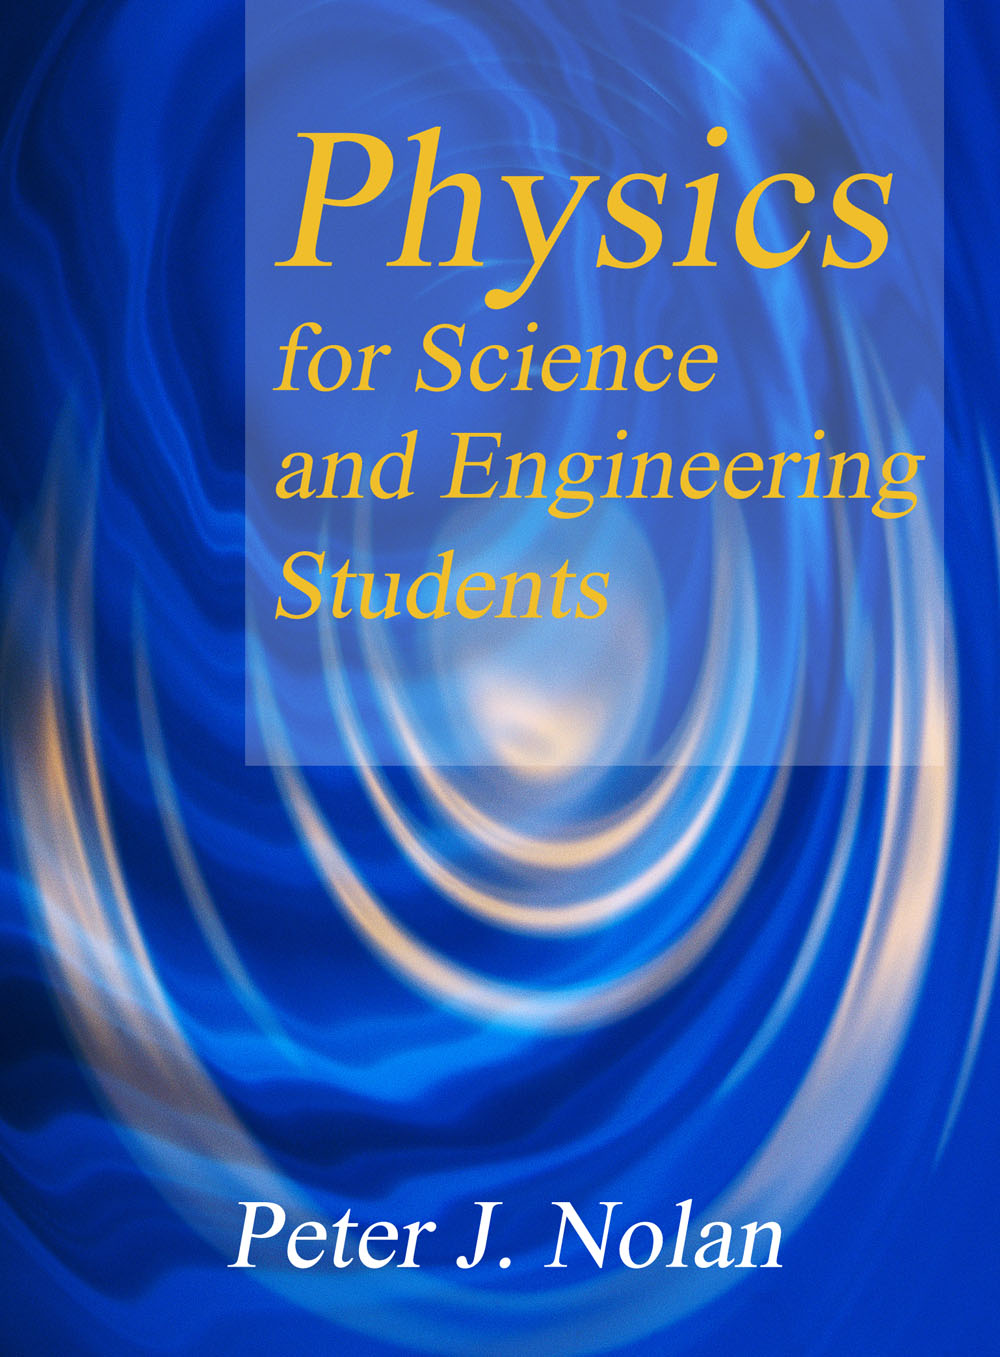 Physics for Science and Engineering Students by Peter Nolan